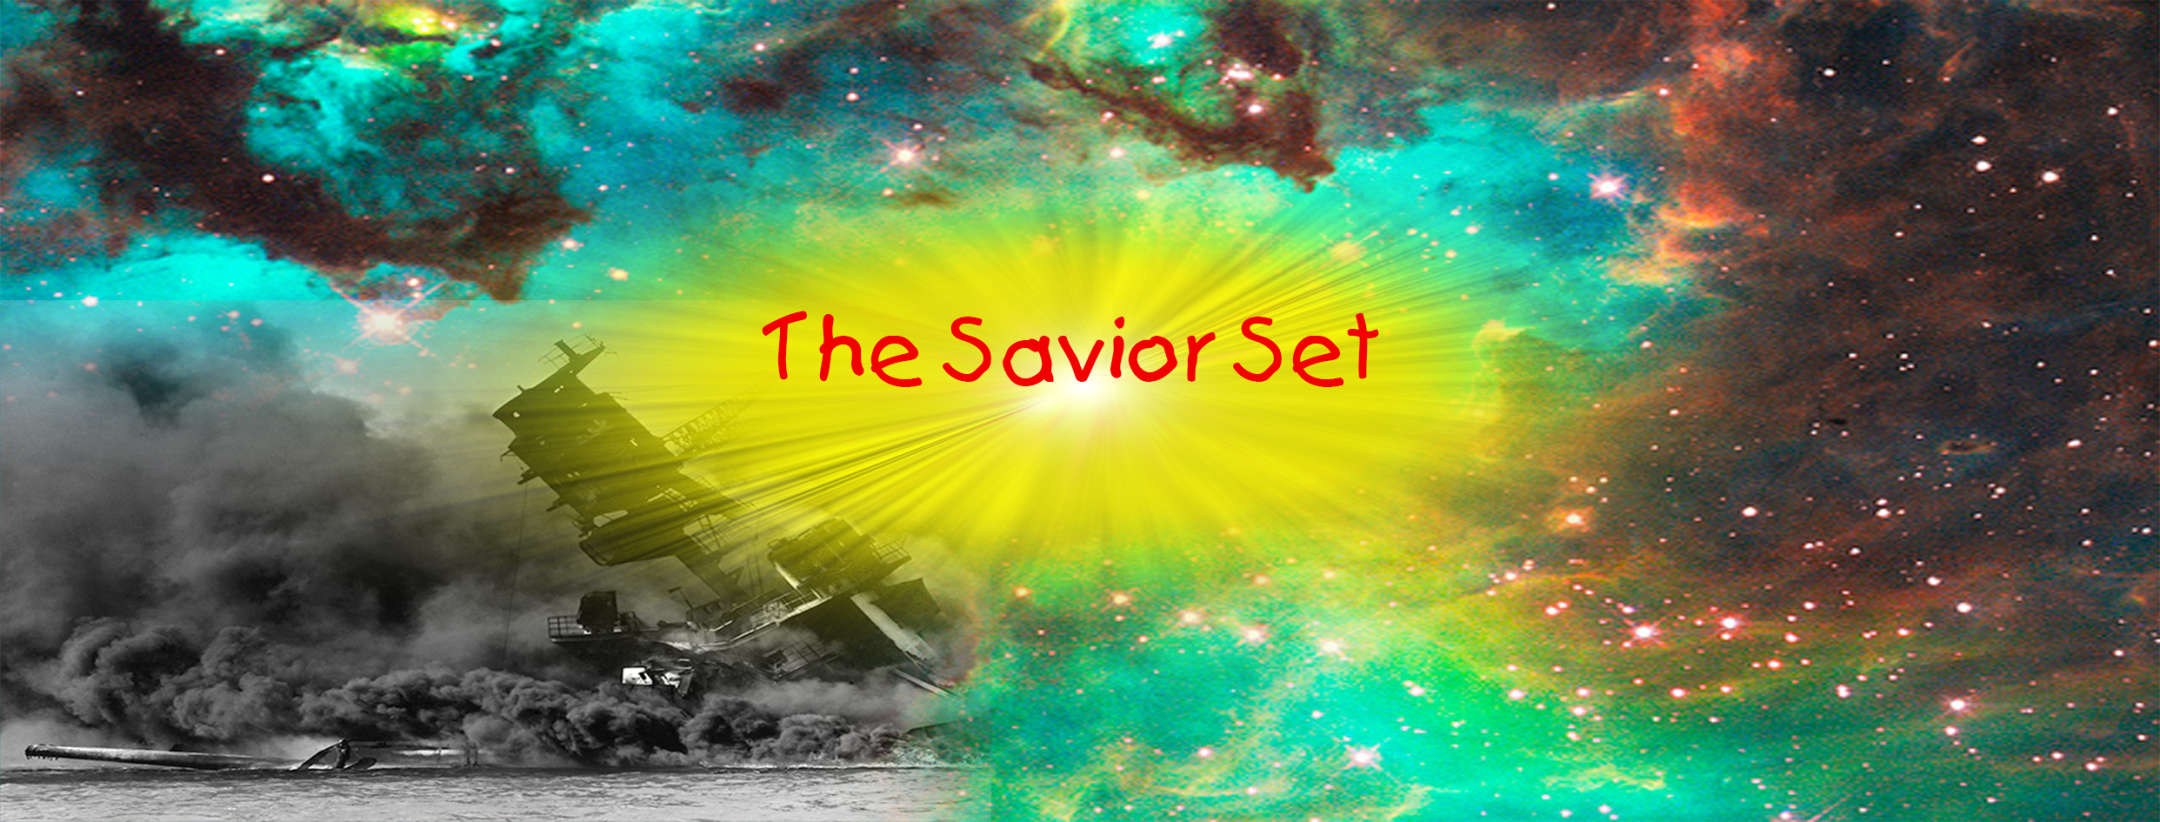 The Savior Set Cover Image